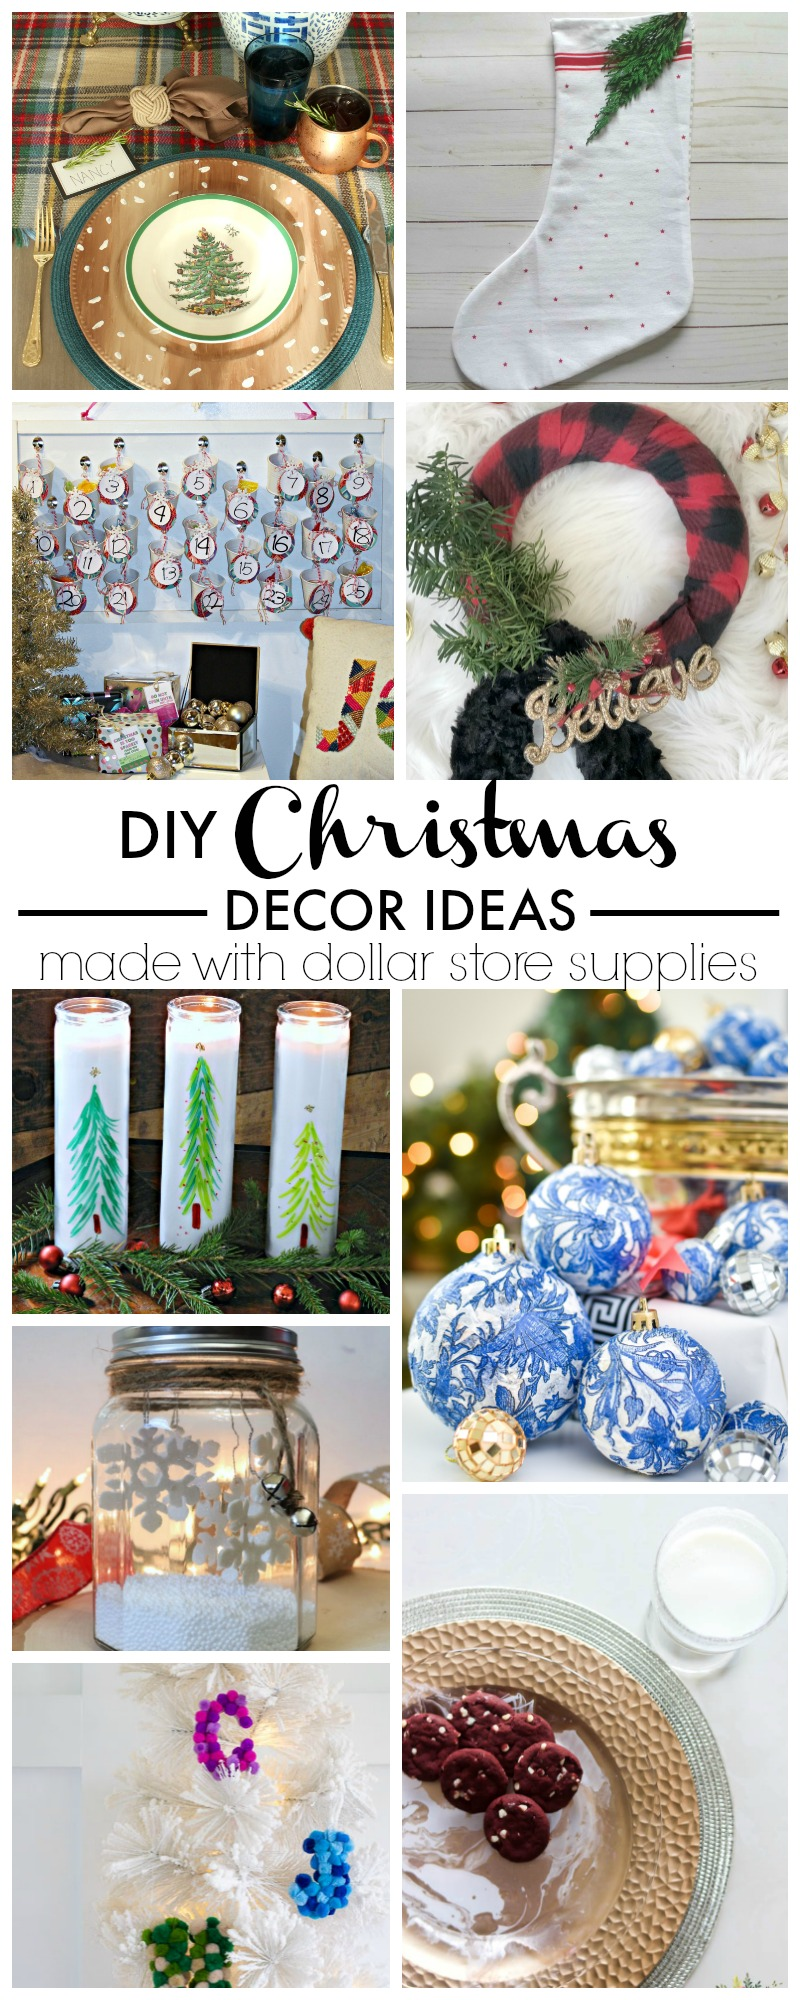 DIY Christmas Decor Ideas | Holiday Decorating Ideas made with Dollar Store supplies